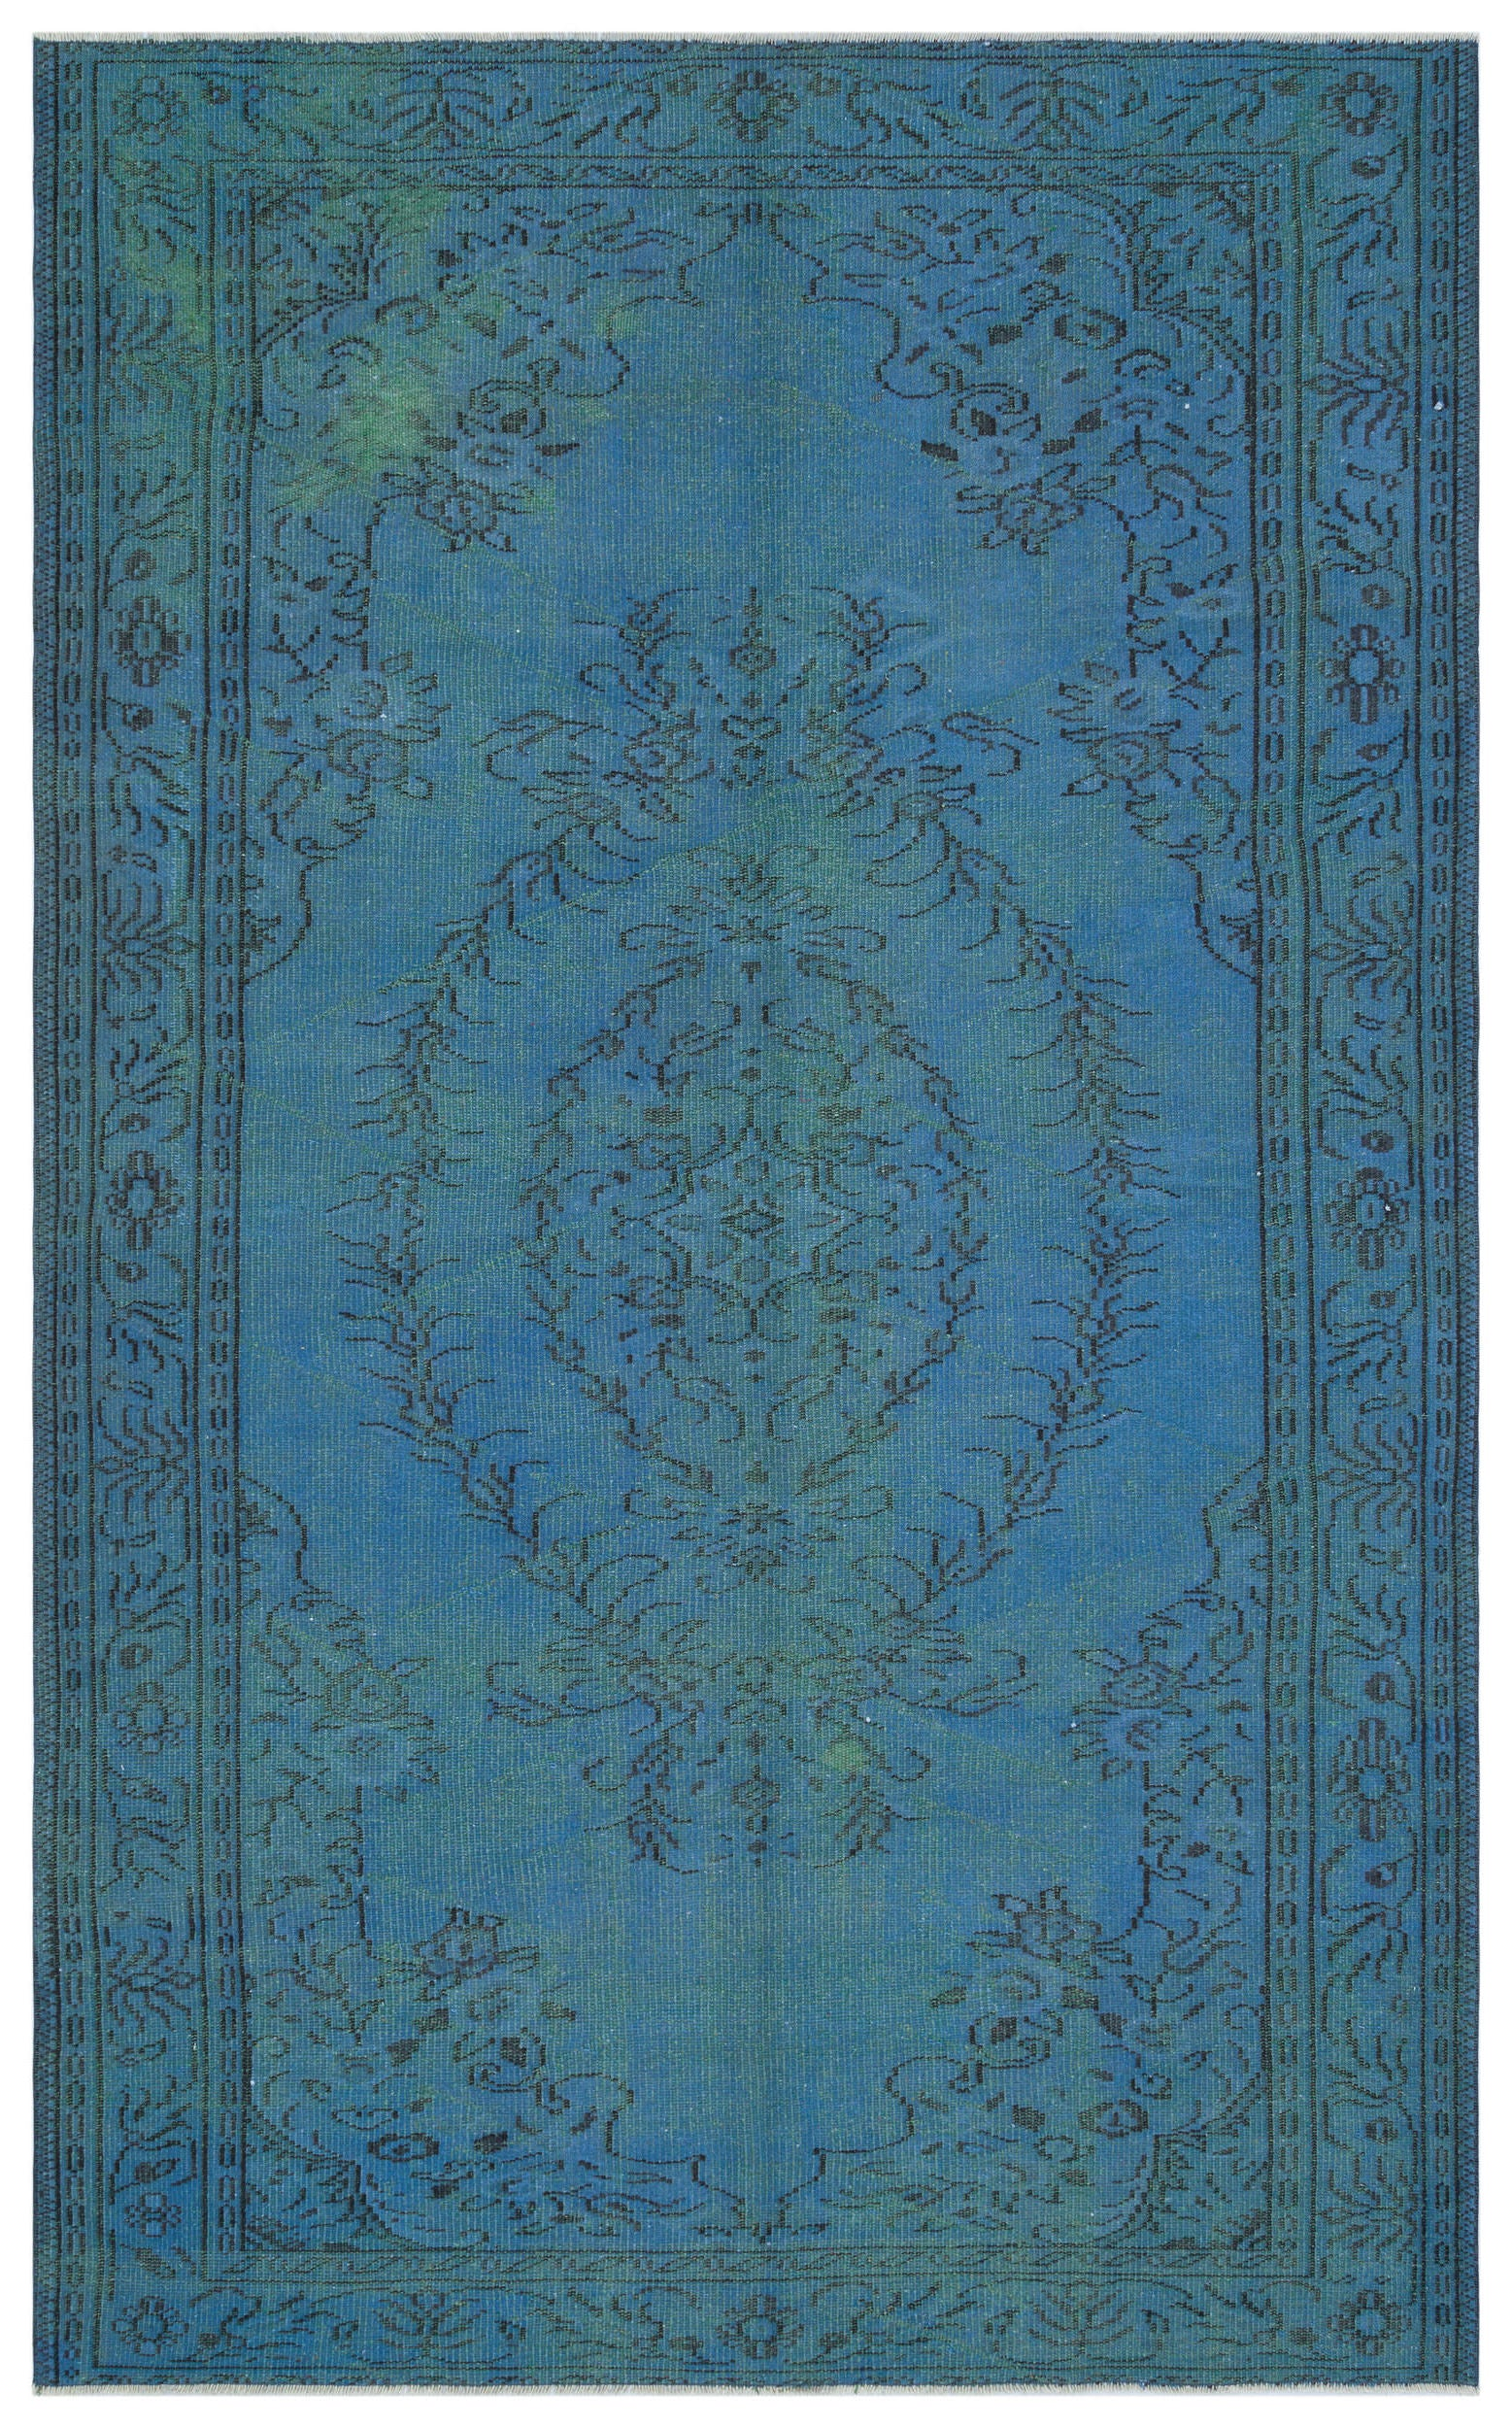 Blue Over Dyed Vintage Rug 5'11'' x 9'7'' ft 181 x 293 cm